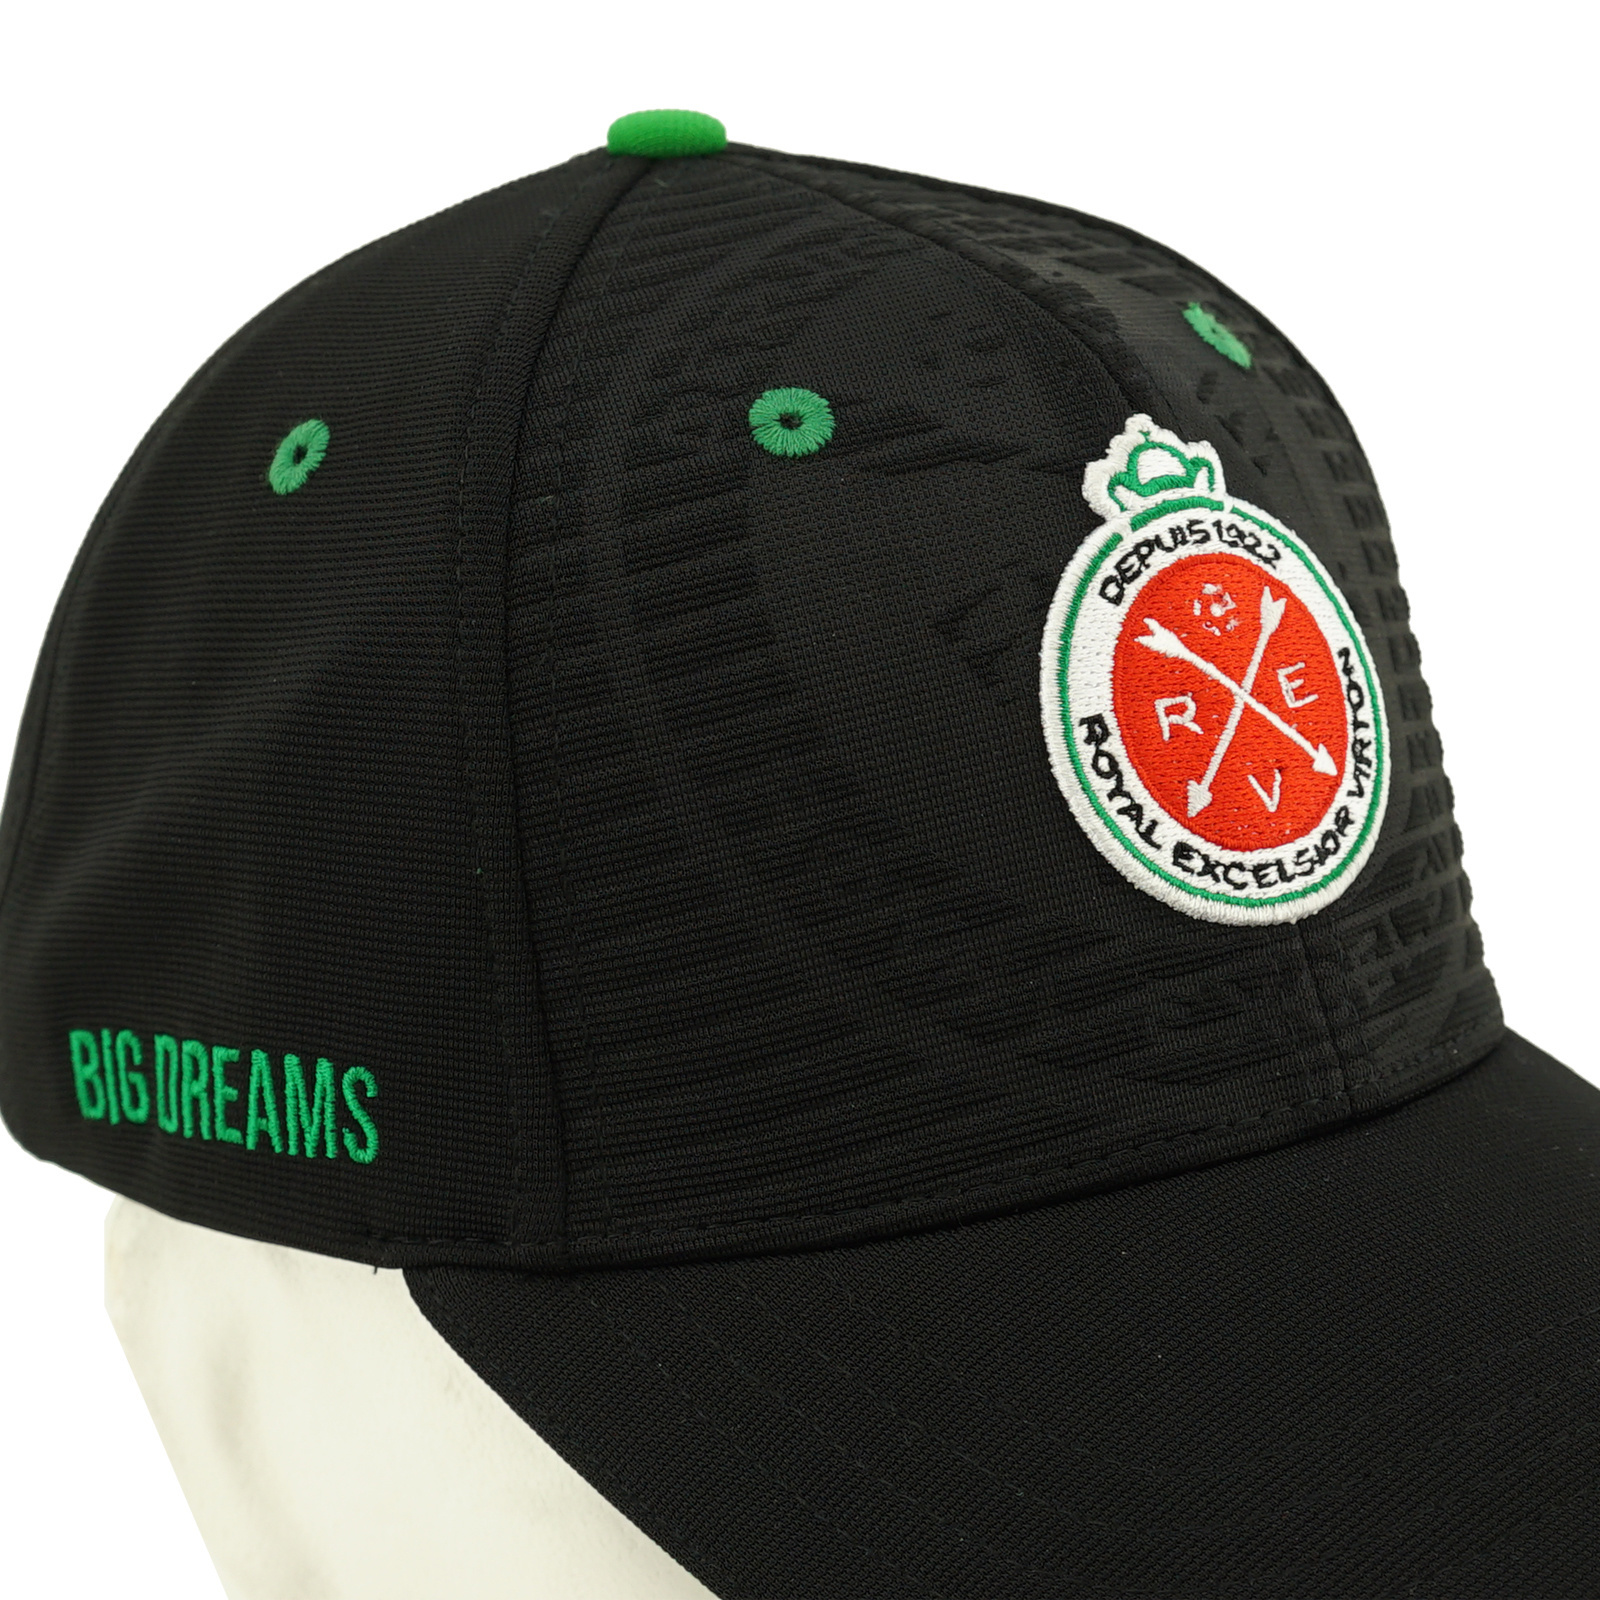 Topfanz Cap black - Small Town / Big Dreams - Virton